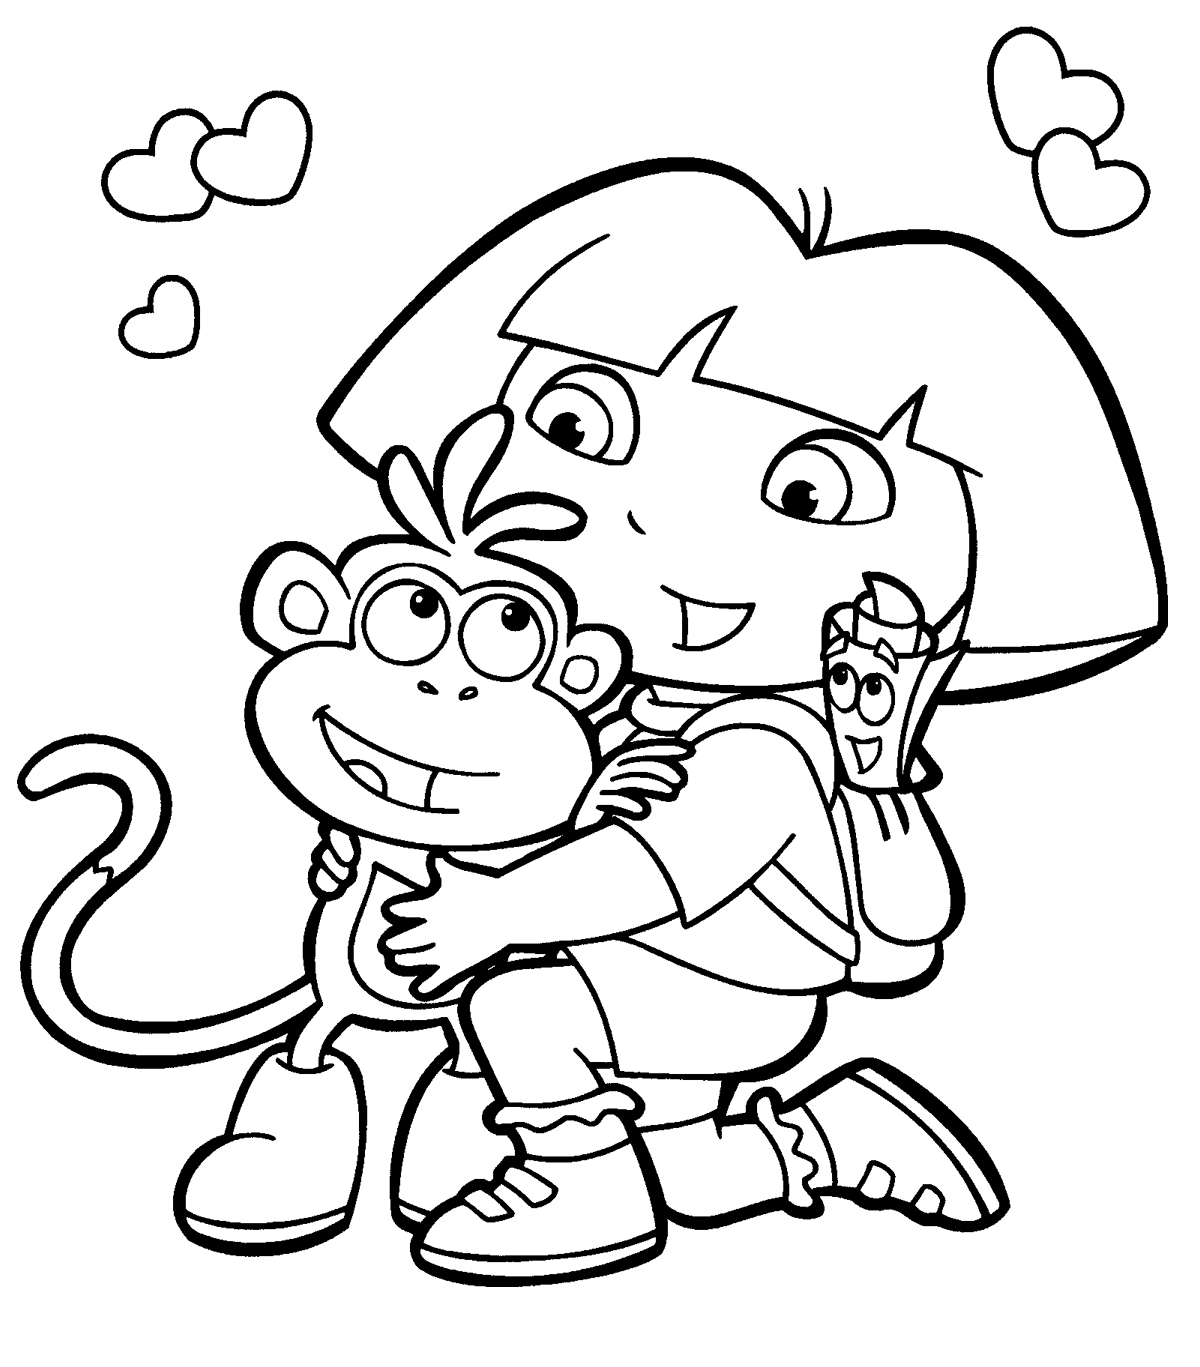 dora coloring pictures dora coloring pages diego coloring pages pictures dora coloring